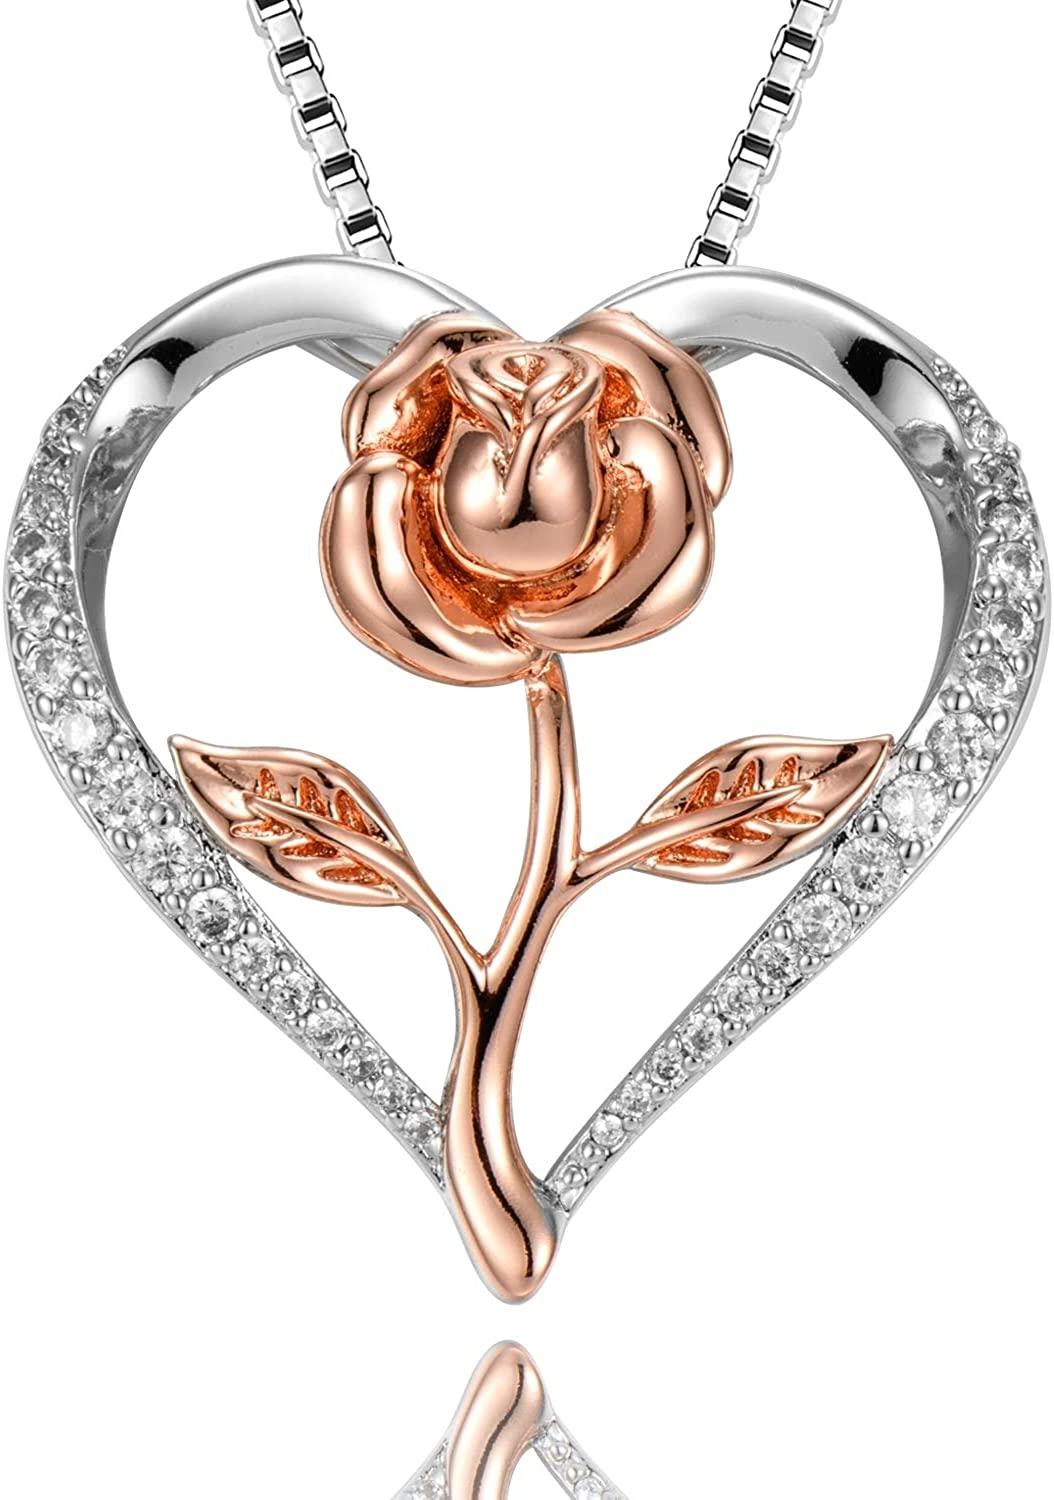 Charm Jewelry Mom Love Heart Crystal Pendant Necklace Mother/'s Day Gift With Box